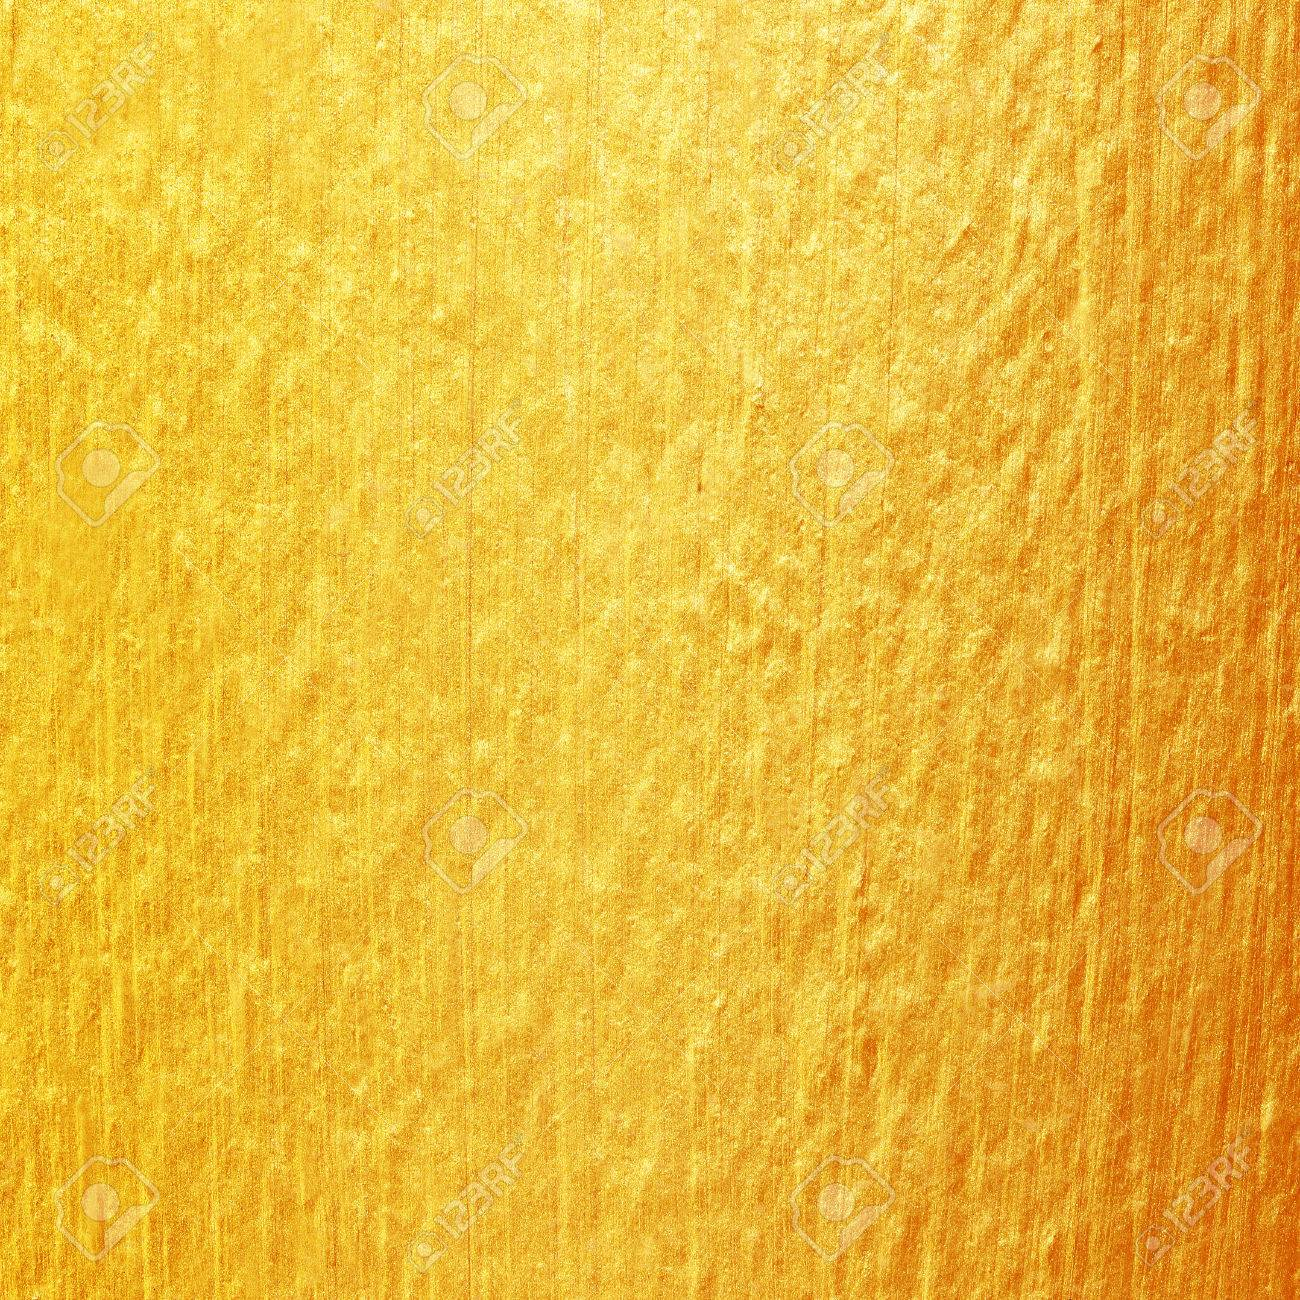 Gold Paint On Cement Wall Texture. Golden Texture Background Stock ...